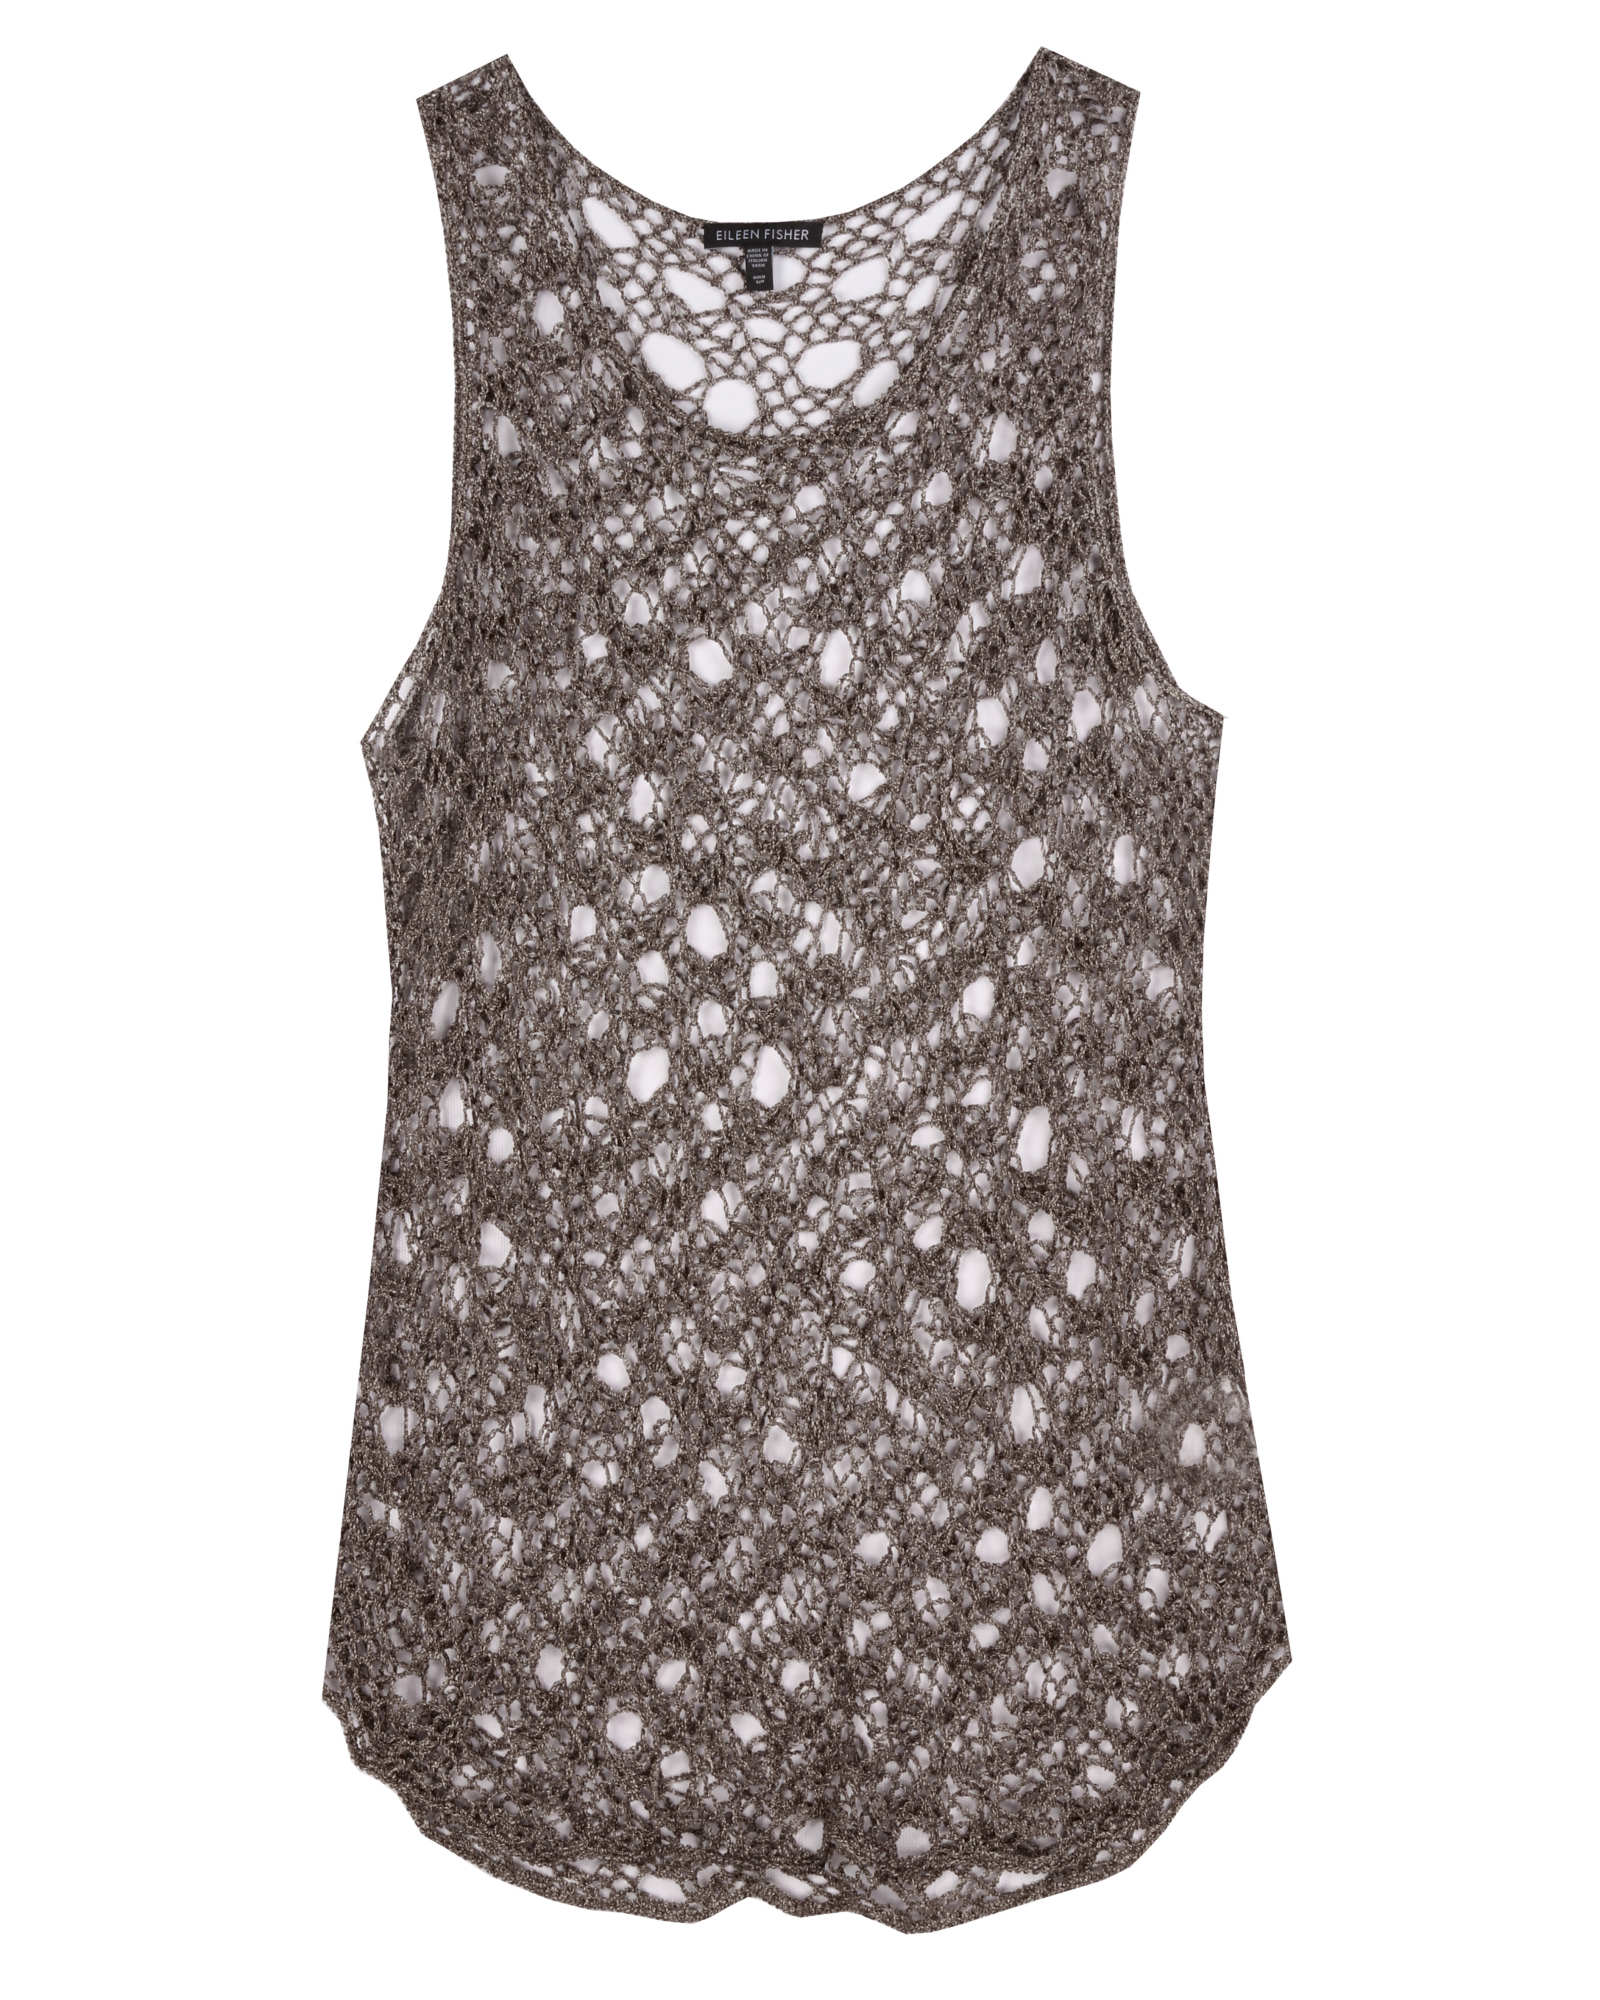 Cotton Metallic Tank